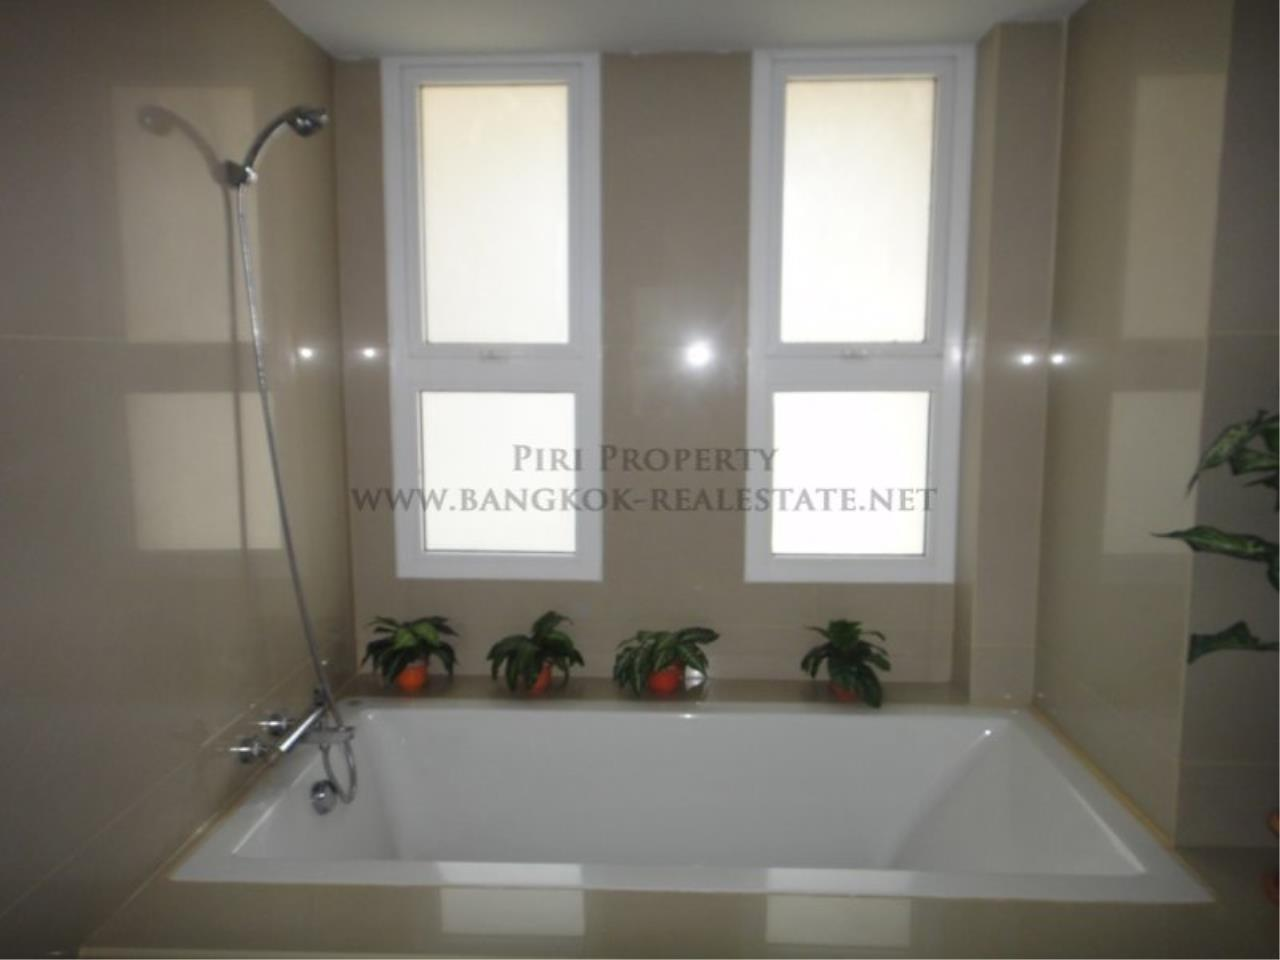 Piri Property Agency's Baan Phrom Phong - 2 Bedroom Condo for Sale - RENOVATED! 11